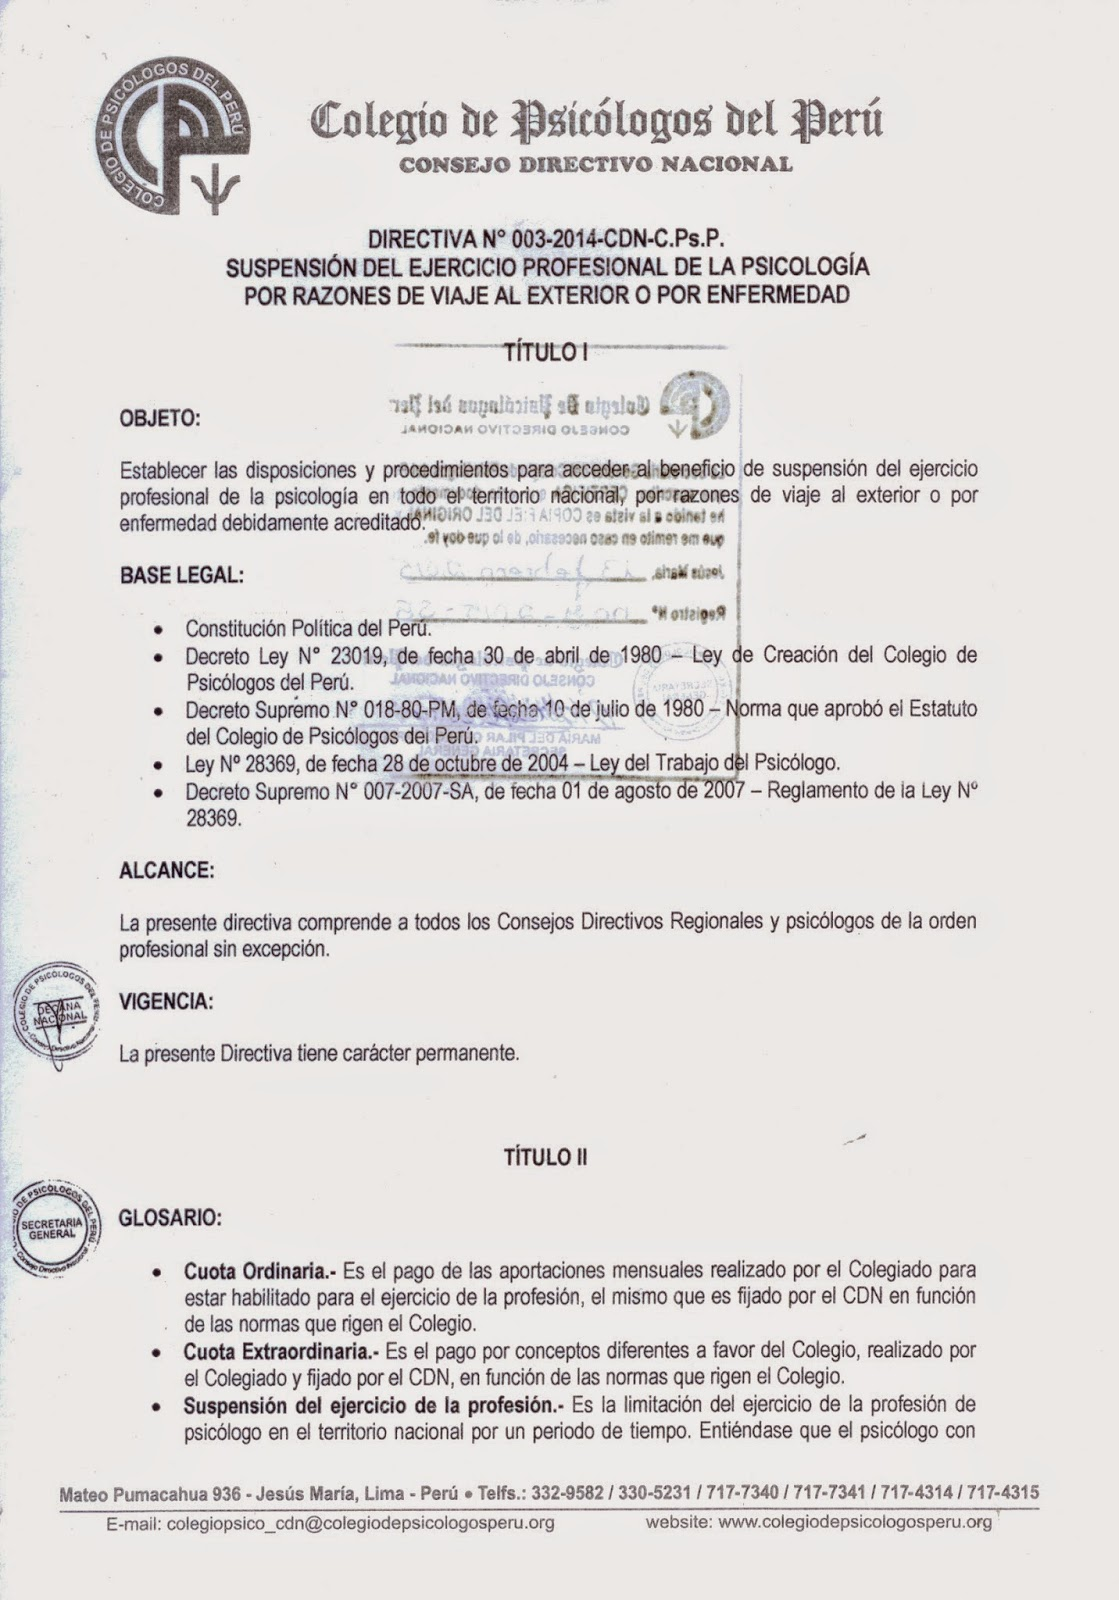 Directiva Nº 003-2014-CND-P.ps.P